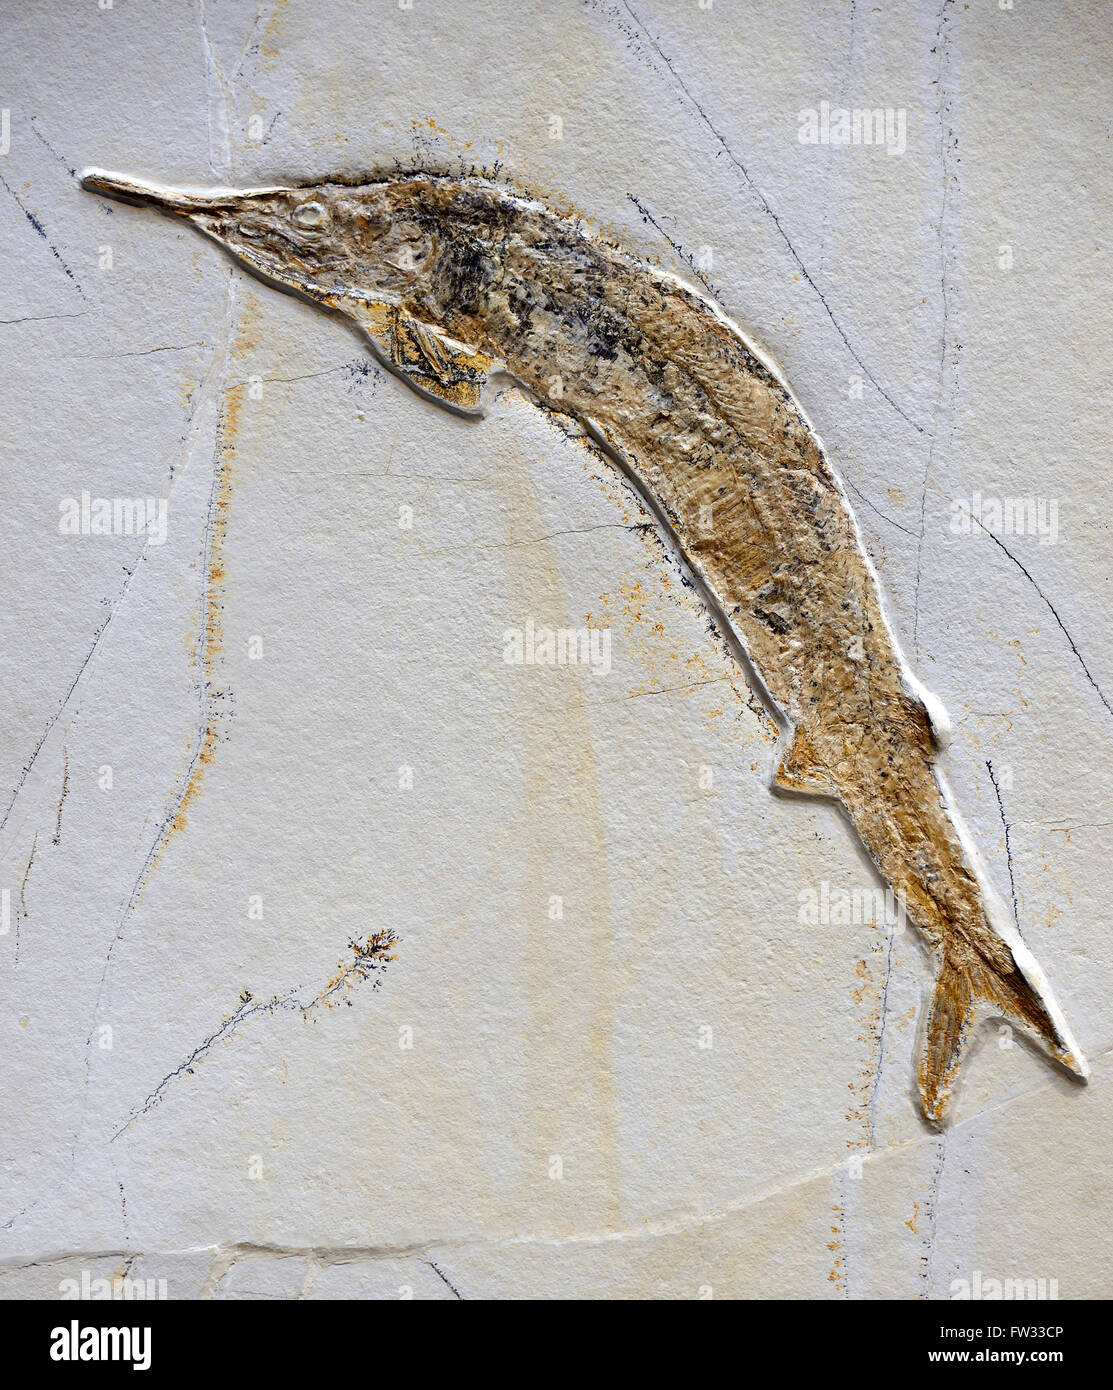 Fossil of Aspidorhynchus acutirostris (Aspidorhynchus acutirostris), extinct genus of ray-finned fish, Naturkundemuseum - Stock Image